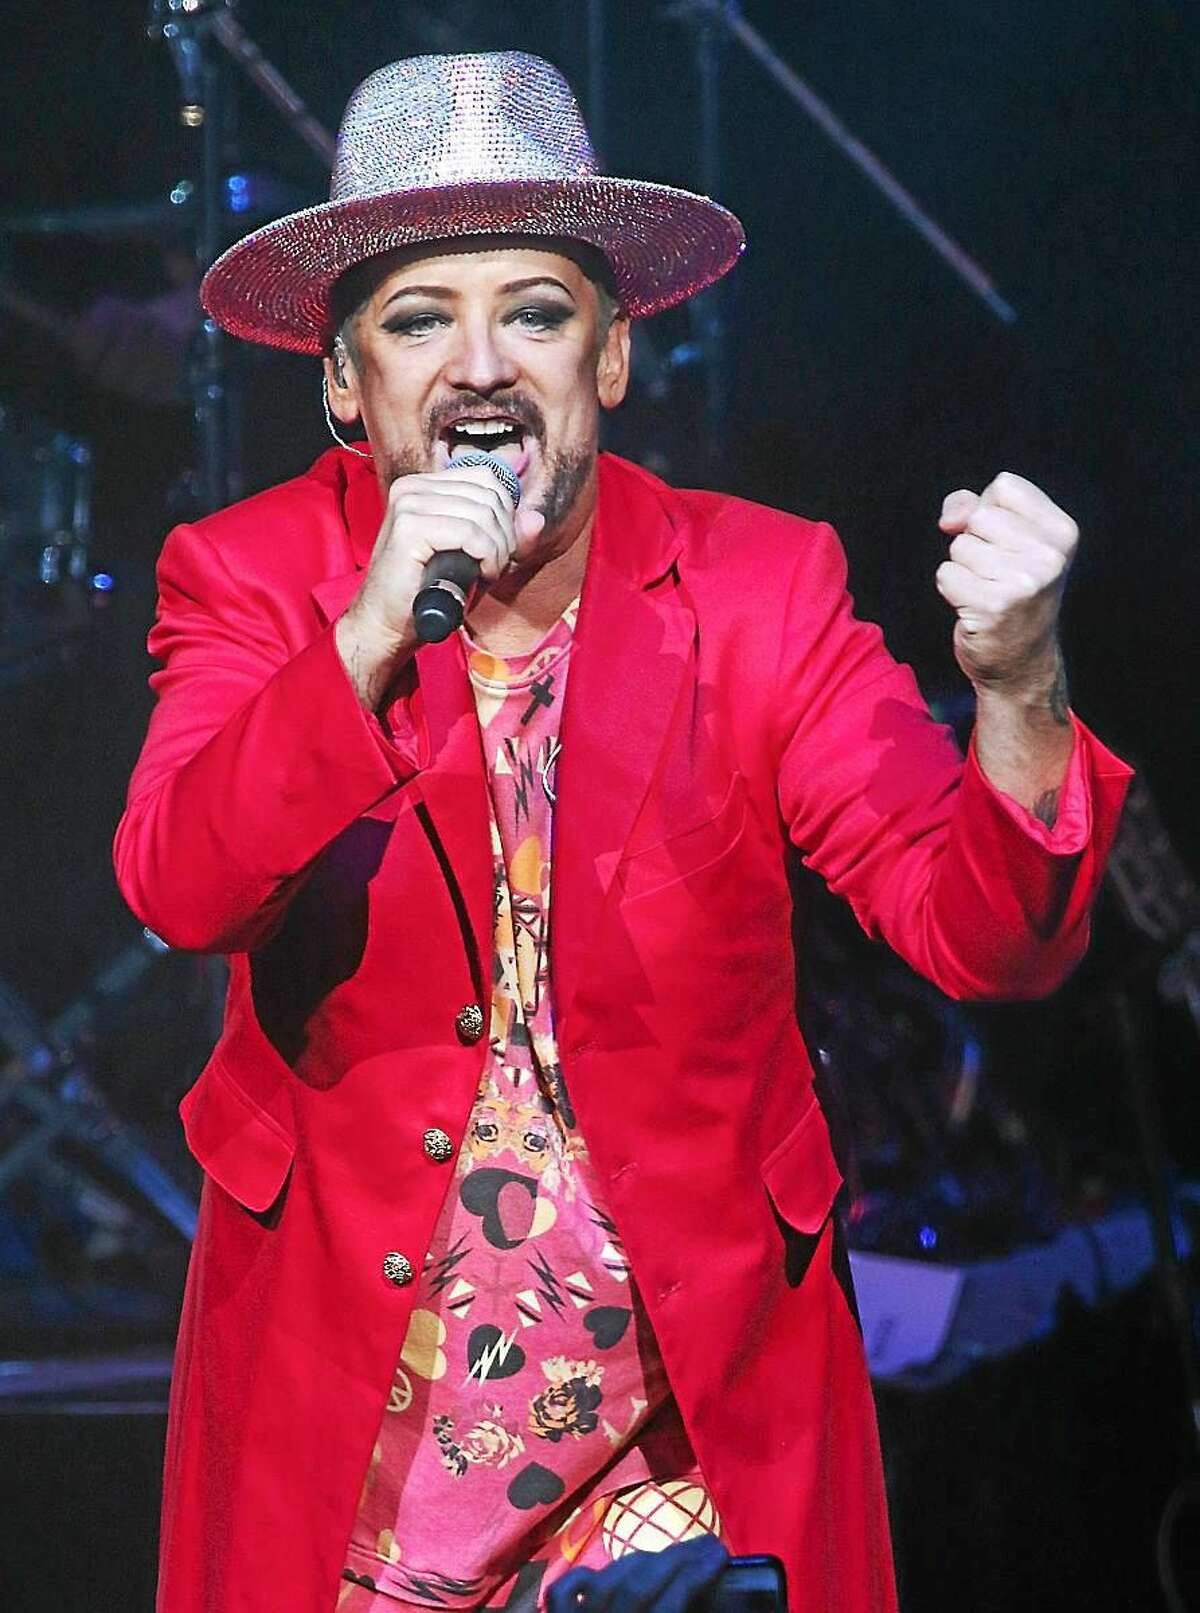 Photo by John Atashian Singer Boy George is shown performing to a capacity crowd of fans during Culture Clubís concert at Foxwoods & Resort Casino on July 31st. To learn more about the exciting line up of upcoming entertainment coming to Foxwoods, visit www.foxwoods.com